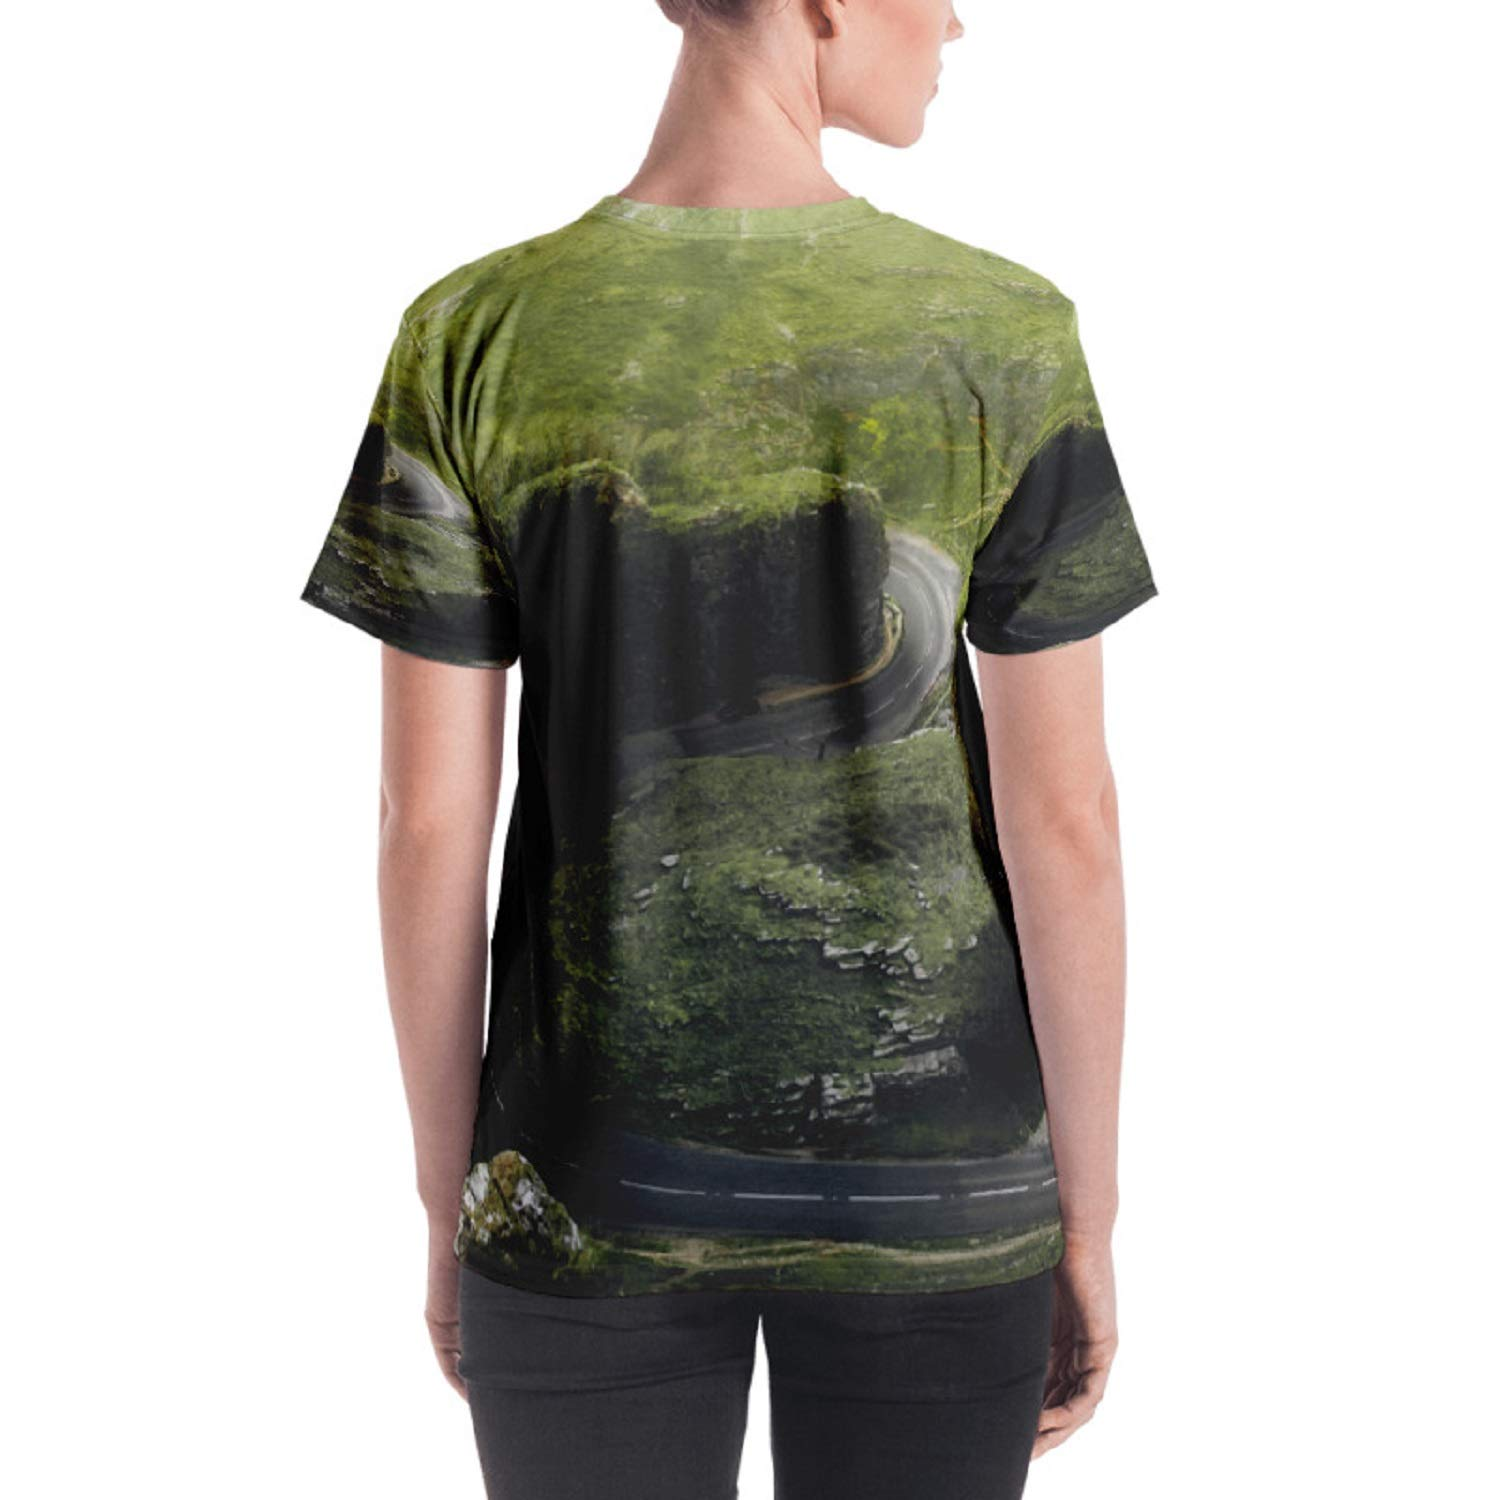 Wearable Urban Womens Crew Neck T-Shirt Jersey Tee Winding Road All Over Print